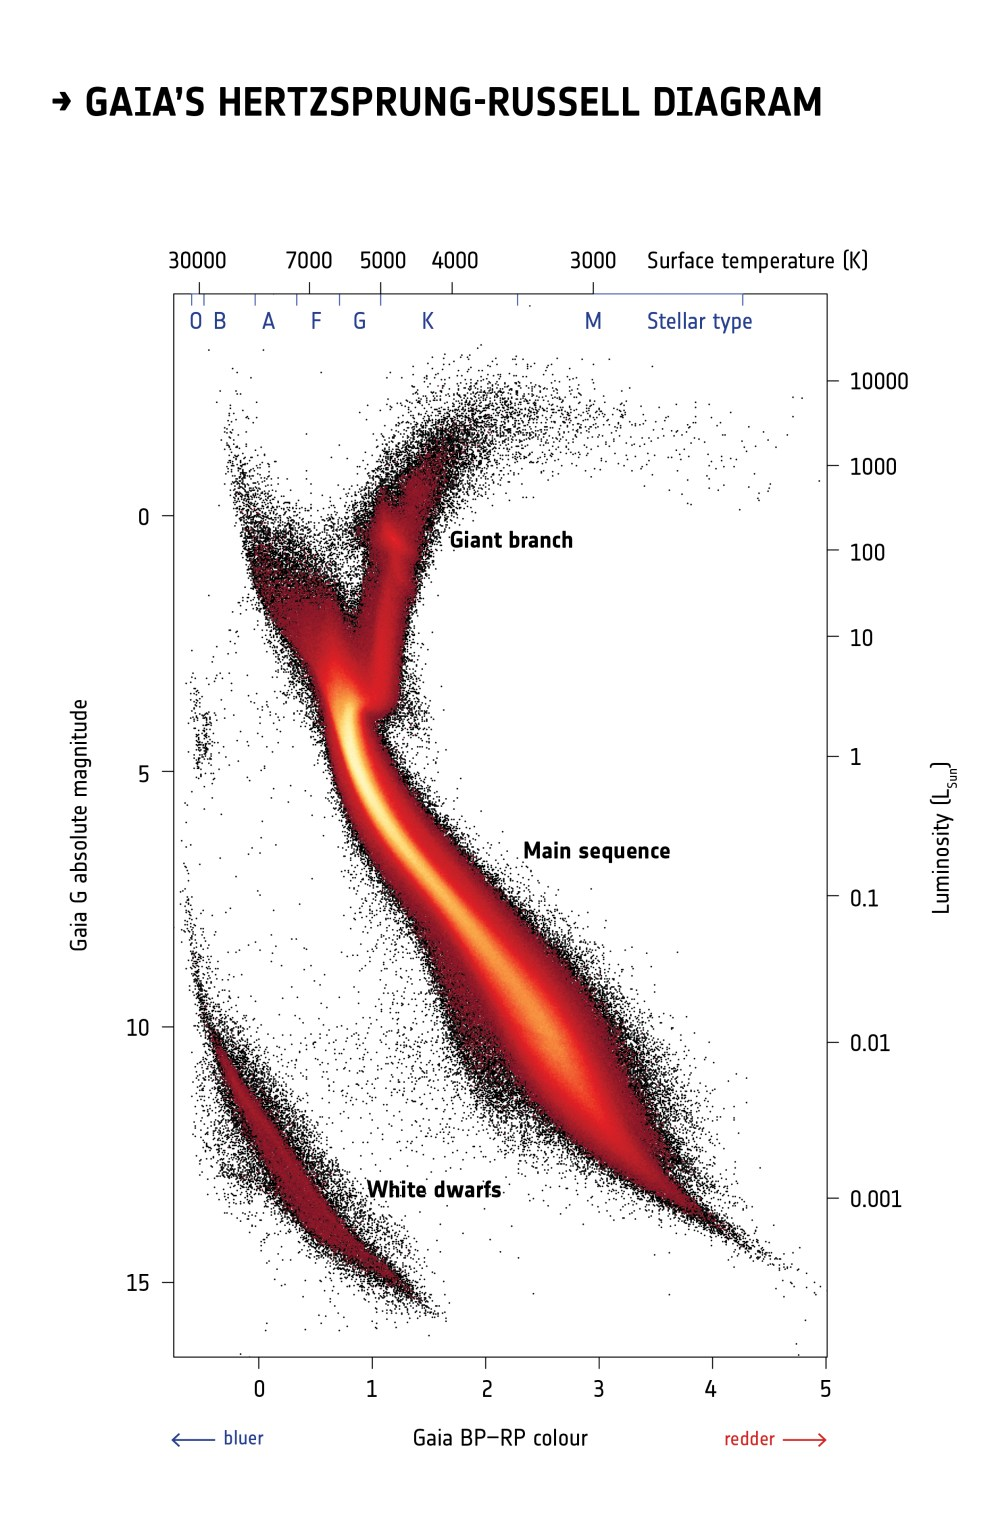 medium resolution of gaia s hertzsprung russell diagram 1 46 mb